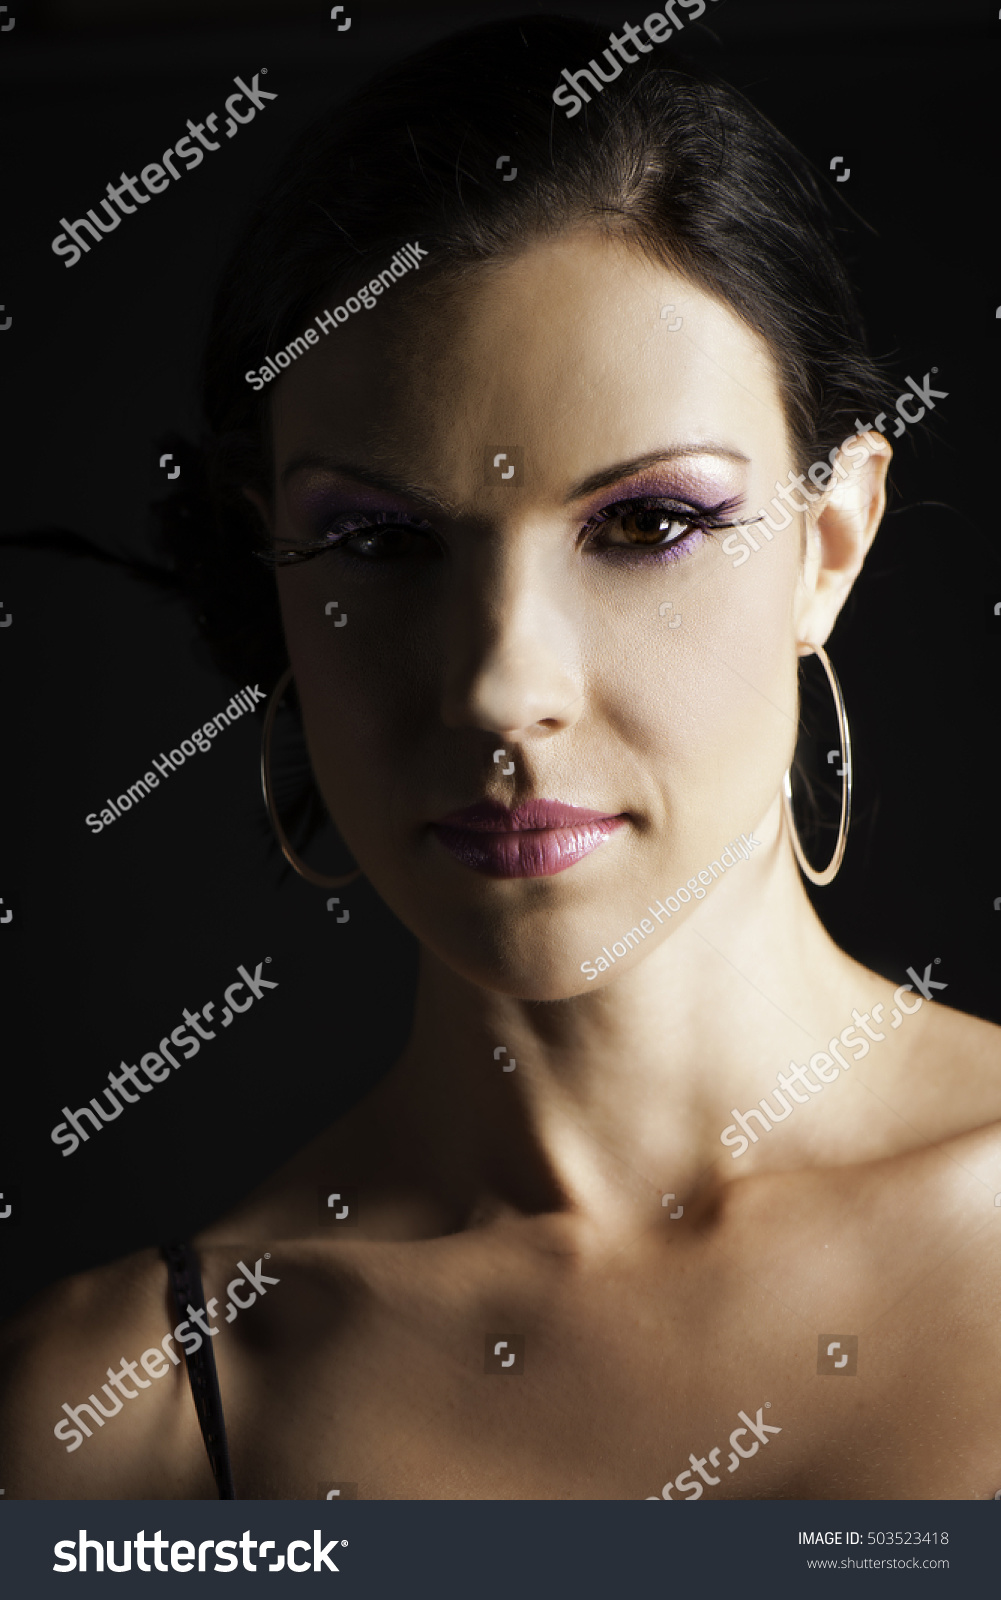 4c3892a5978 Portrait of beautiful dark haired woman wearing purple makeup with  elaborate black false eyelashes and silver